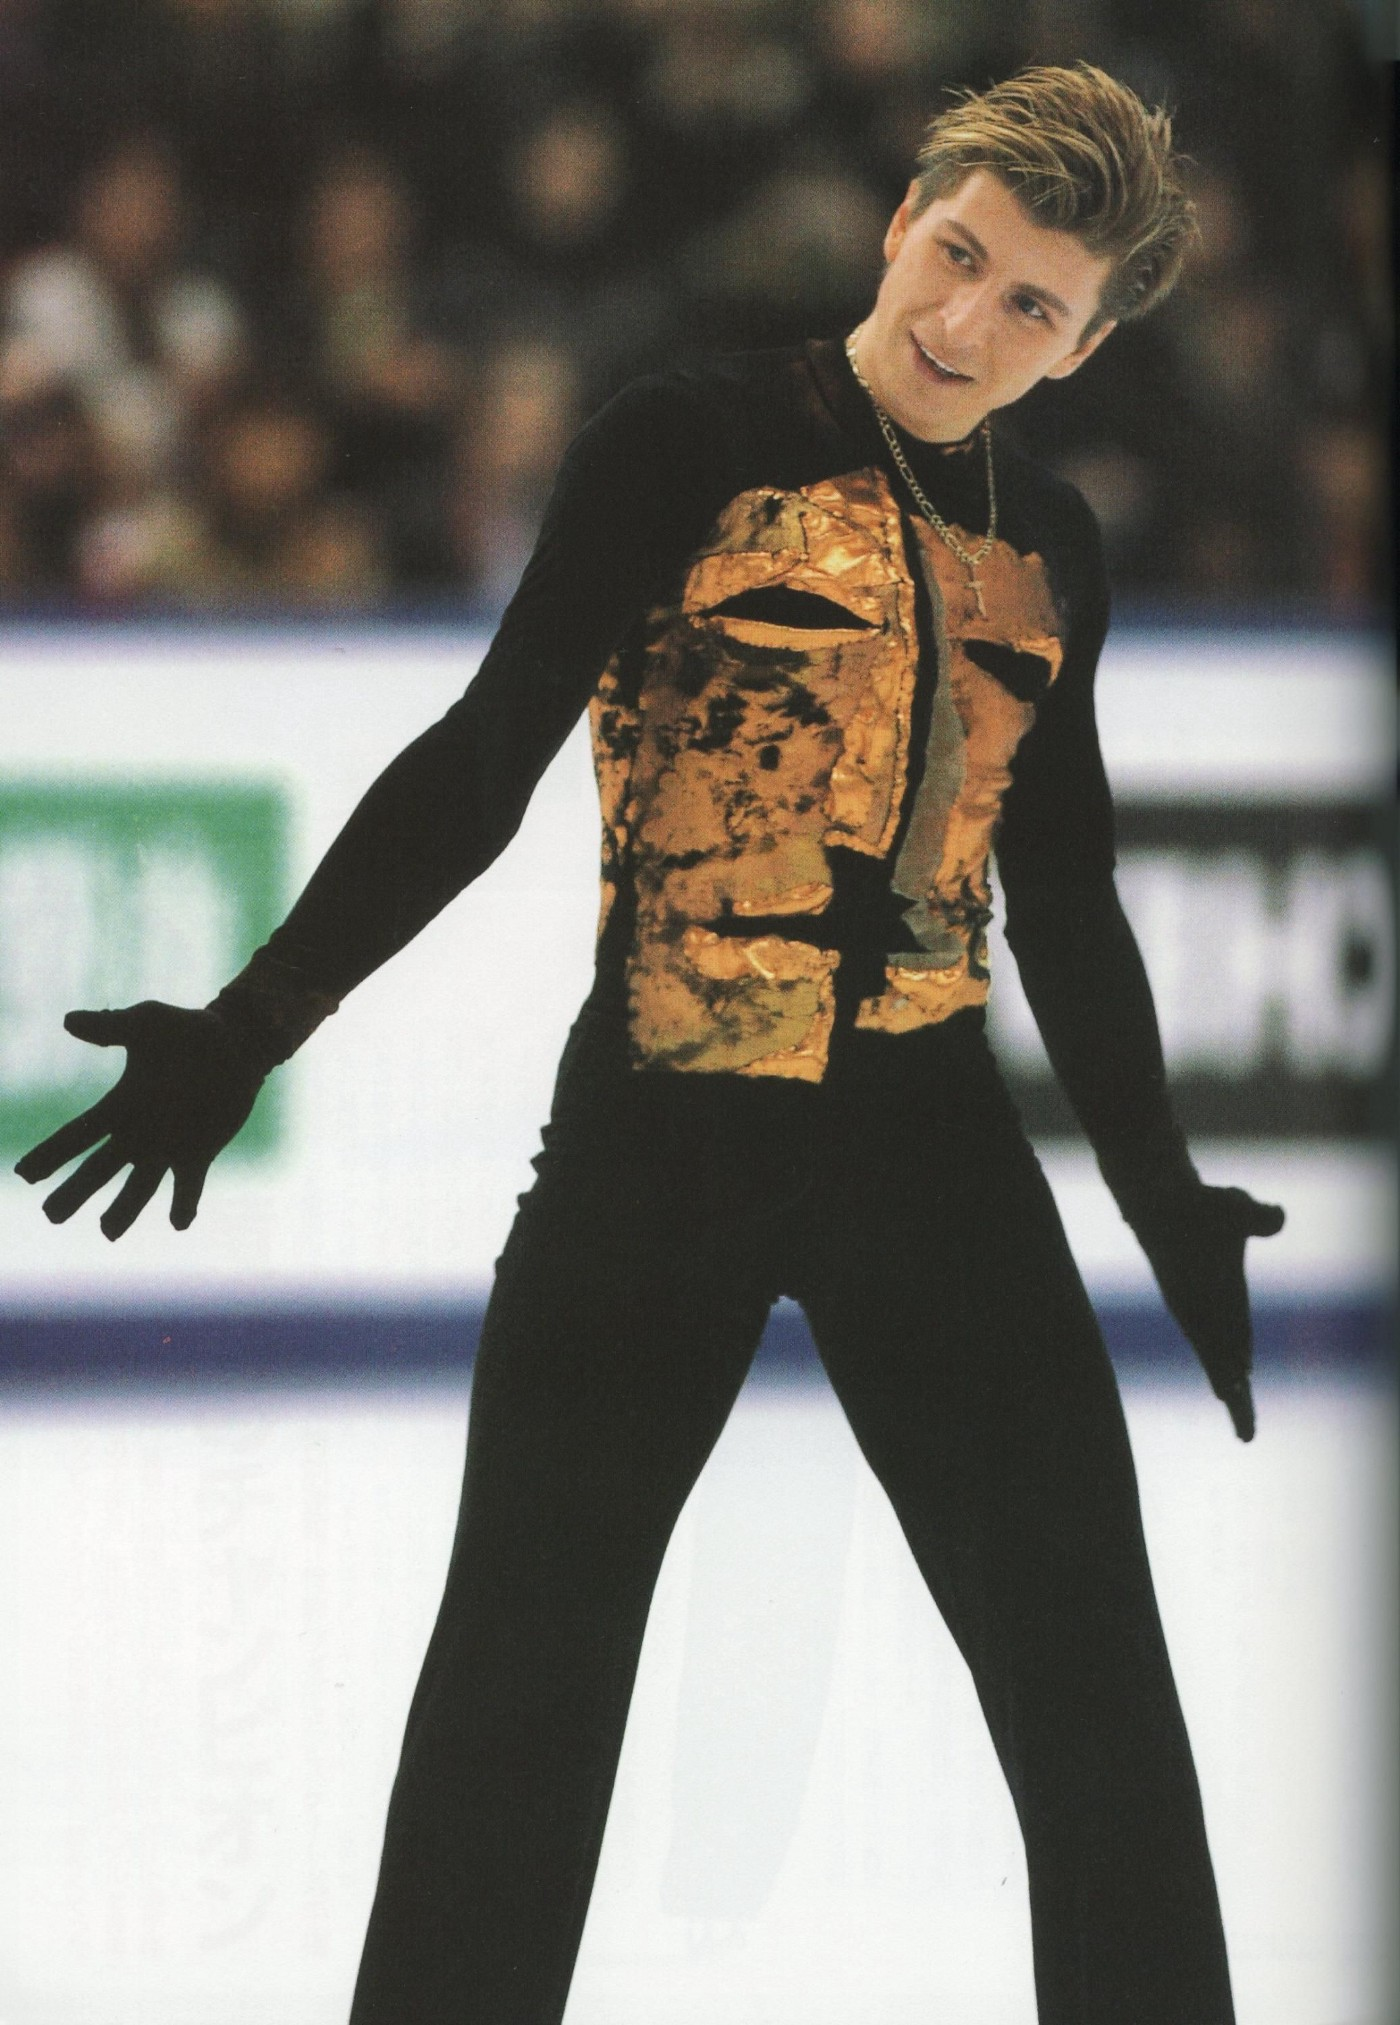 Action shot of figure skater Alexie Yagudin during his Man in the Iron Mask 2002 Olympic long program